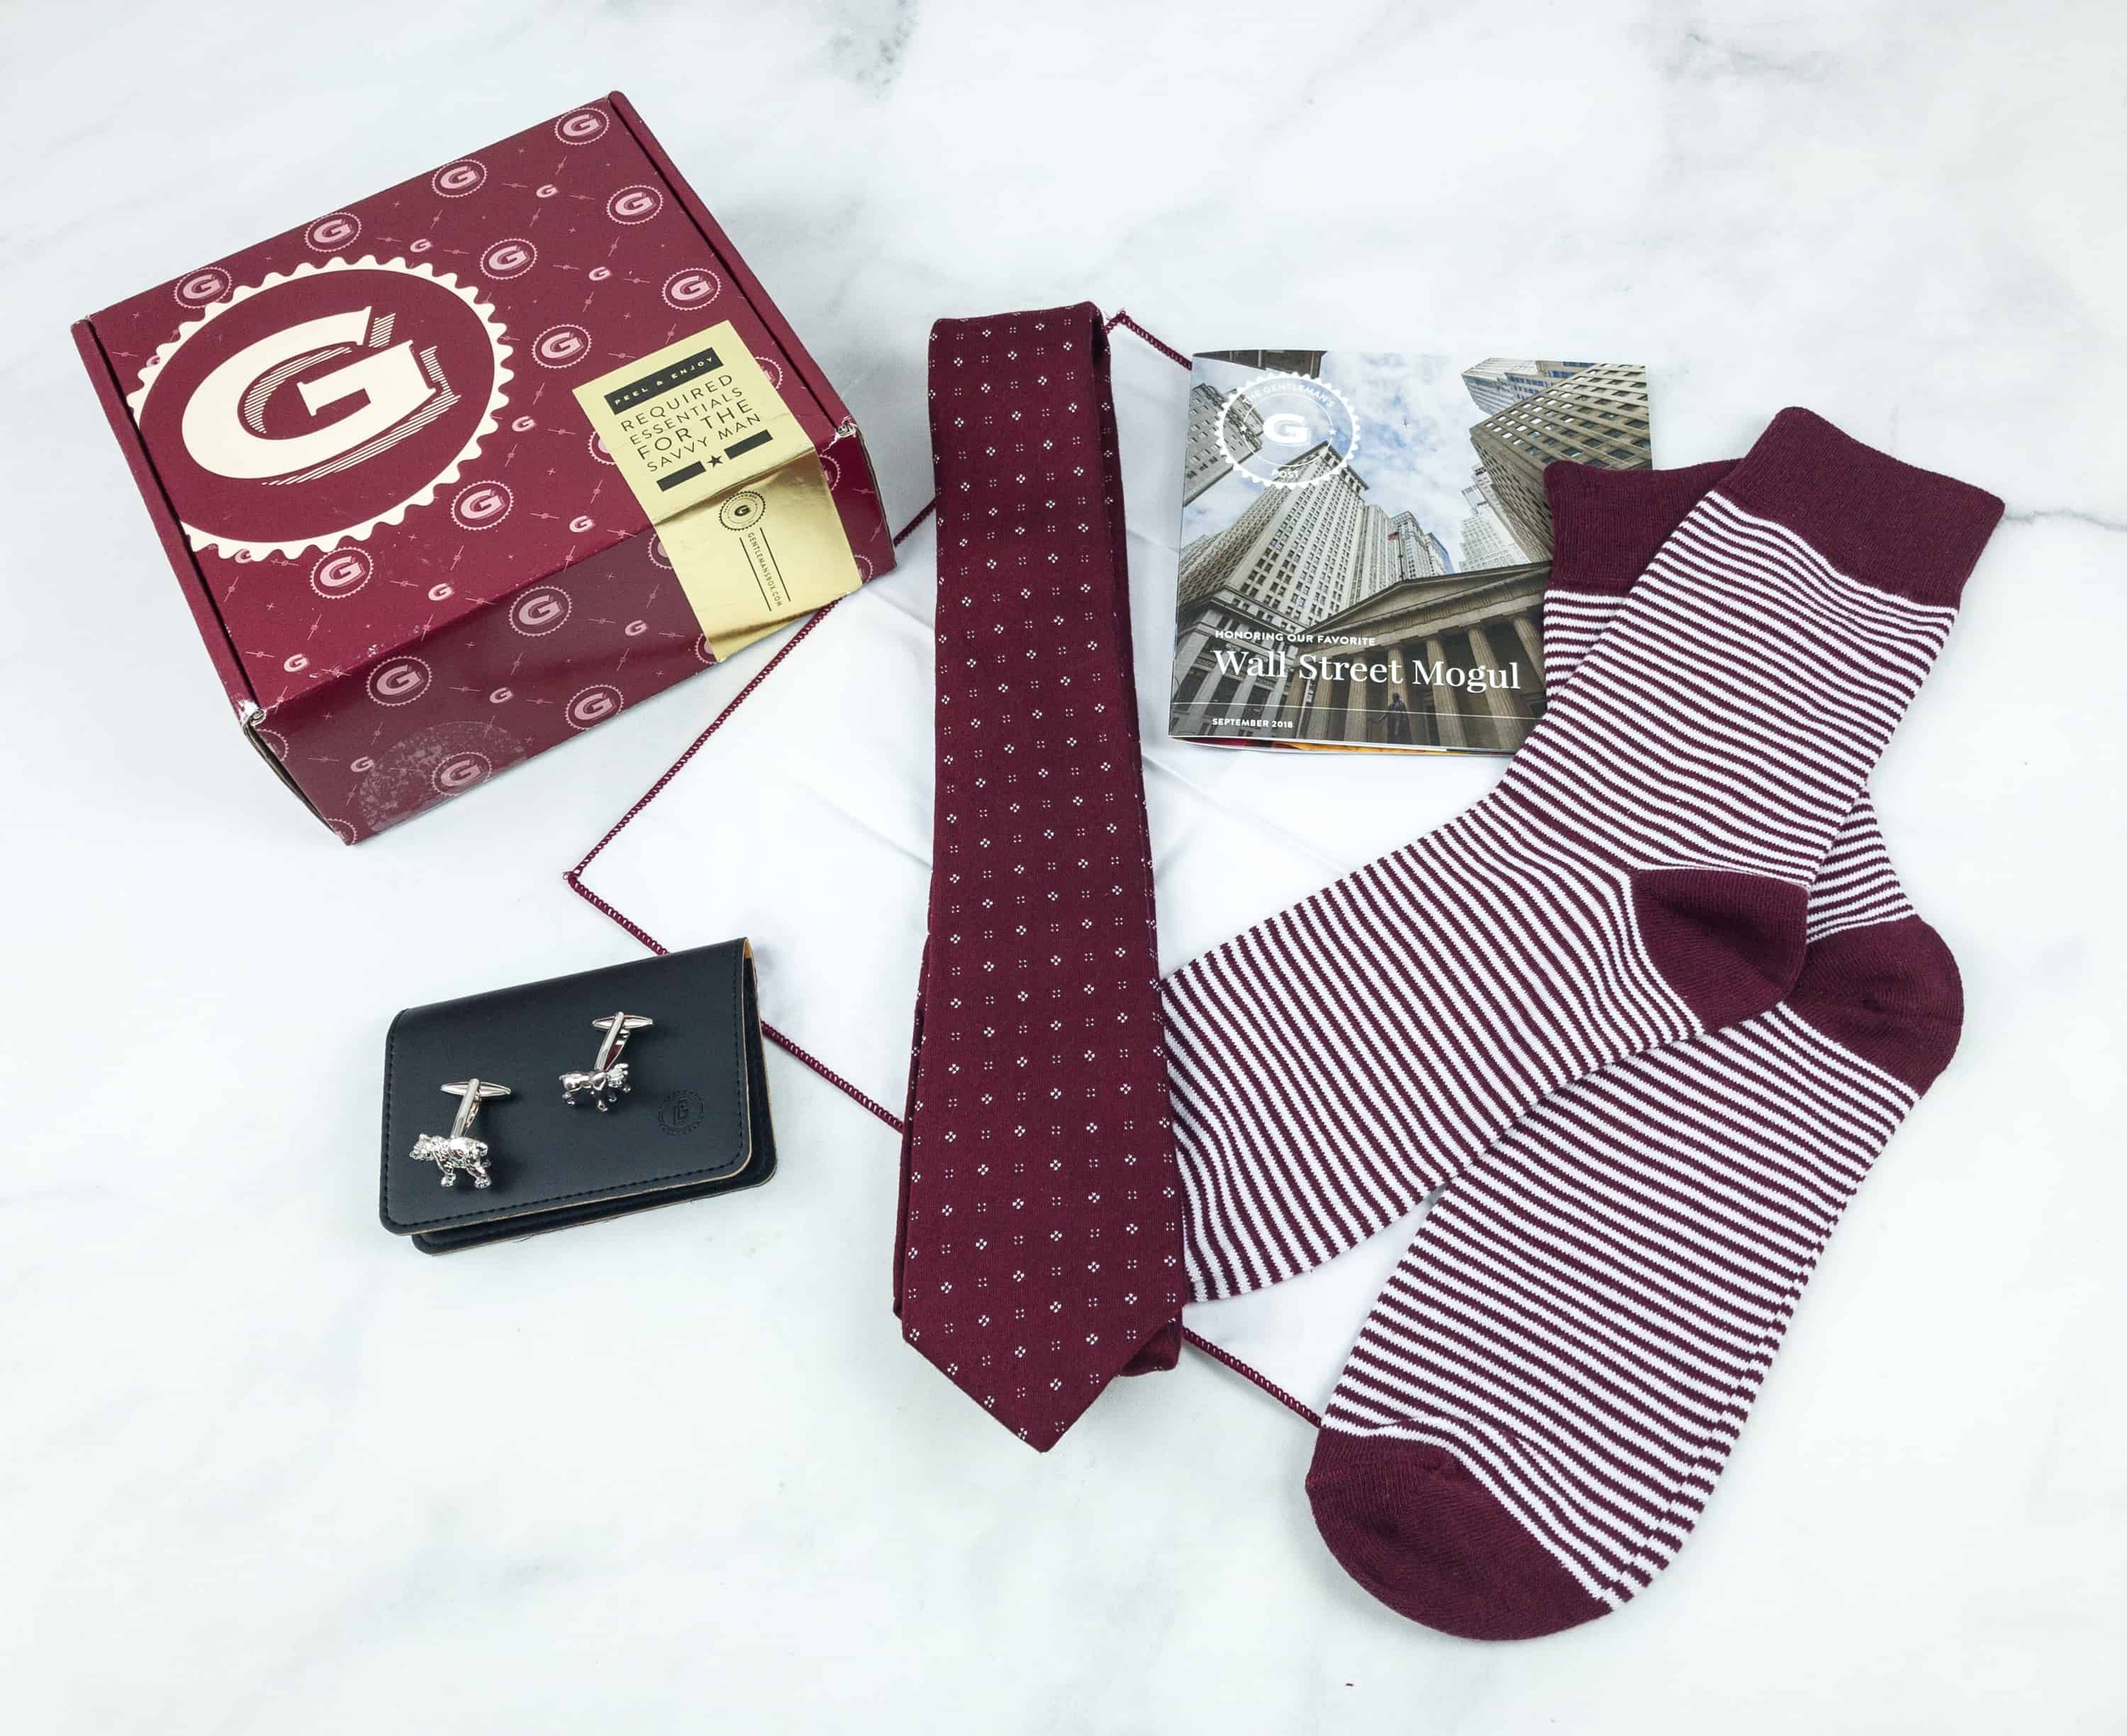 The Gentleman's Box September 2018 Review & Coupon